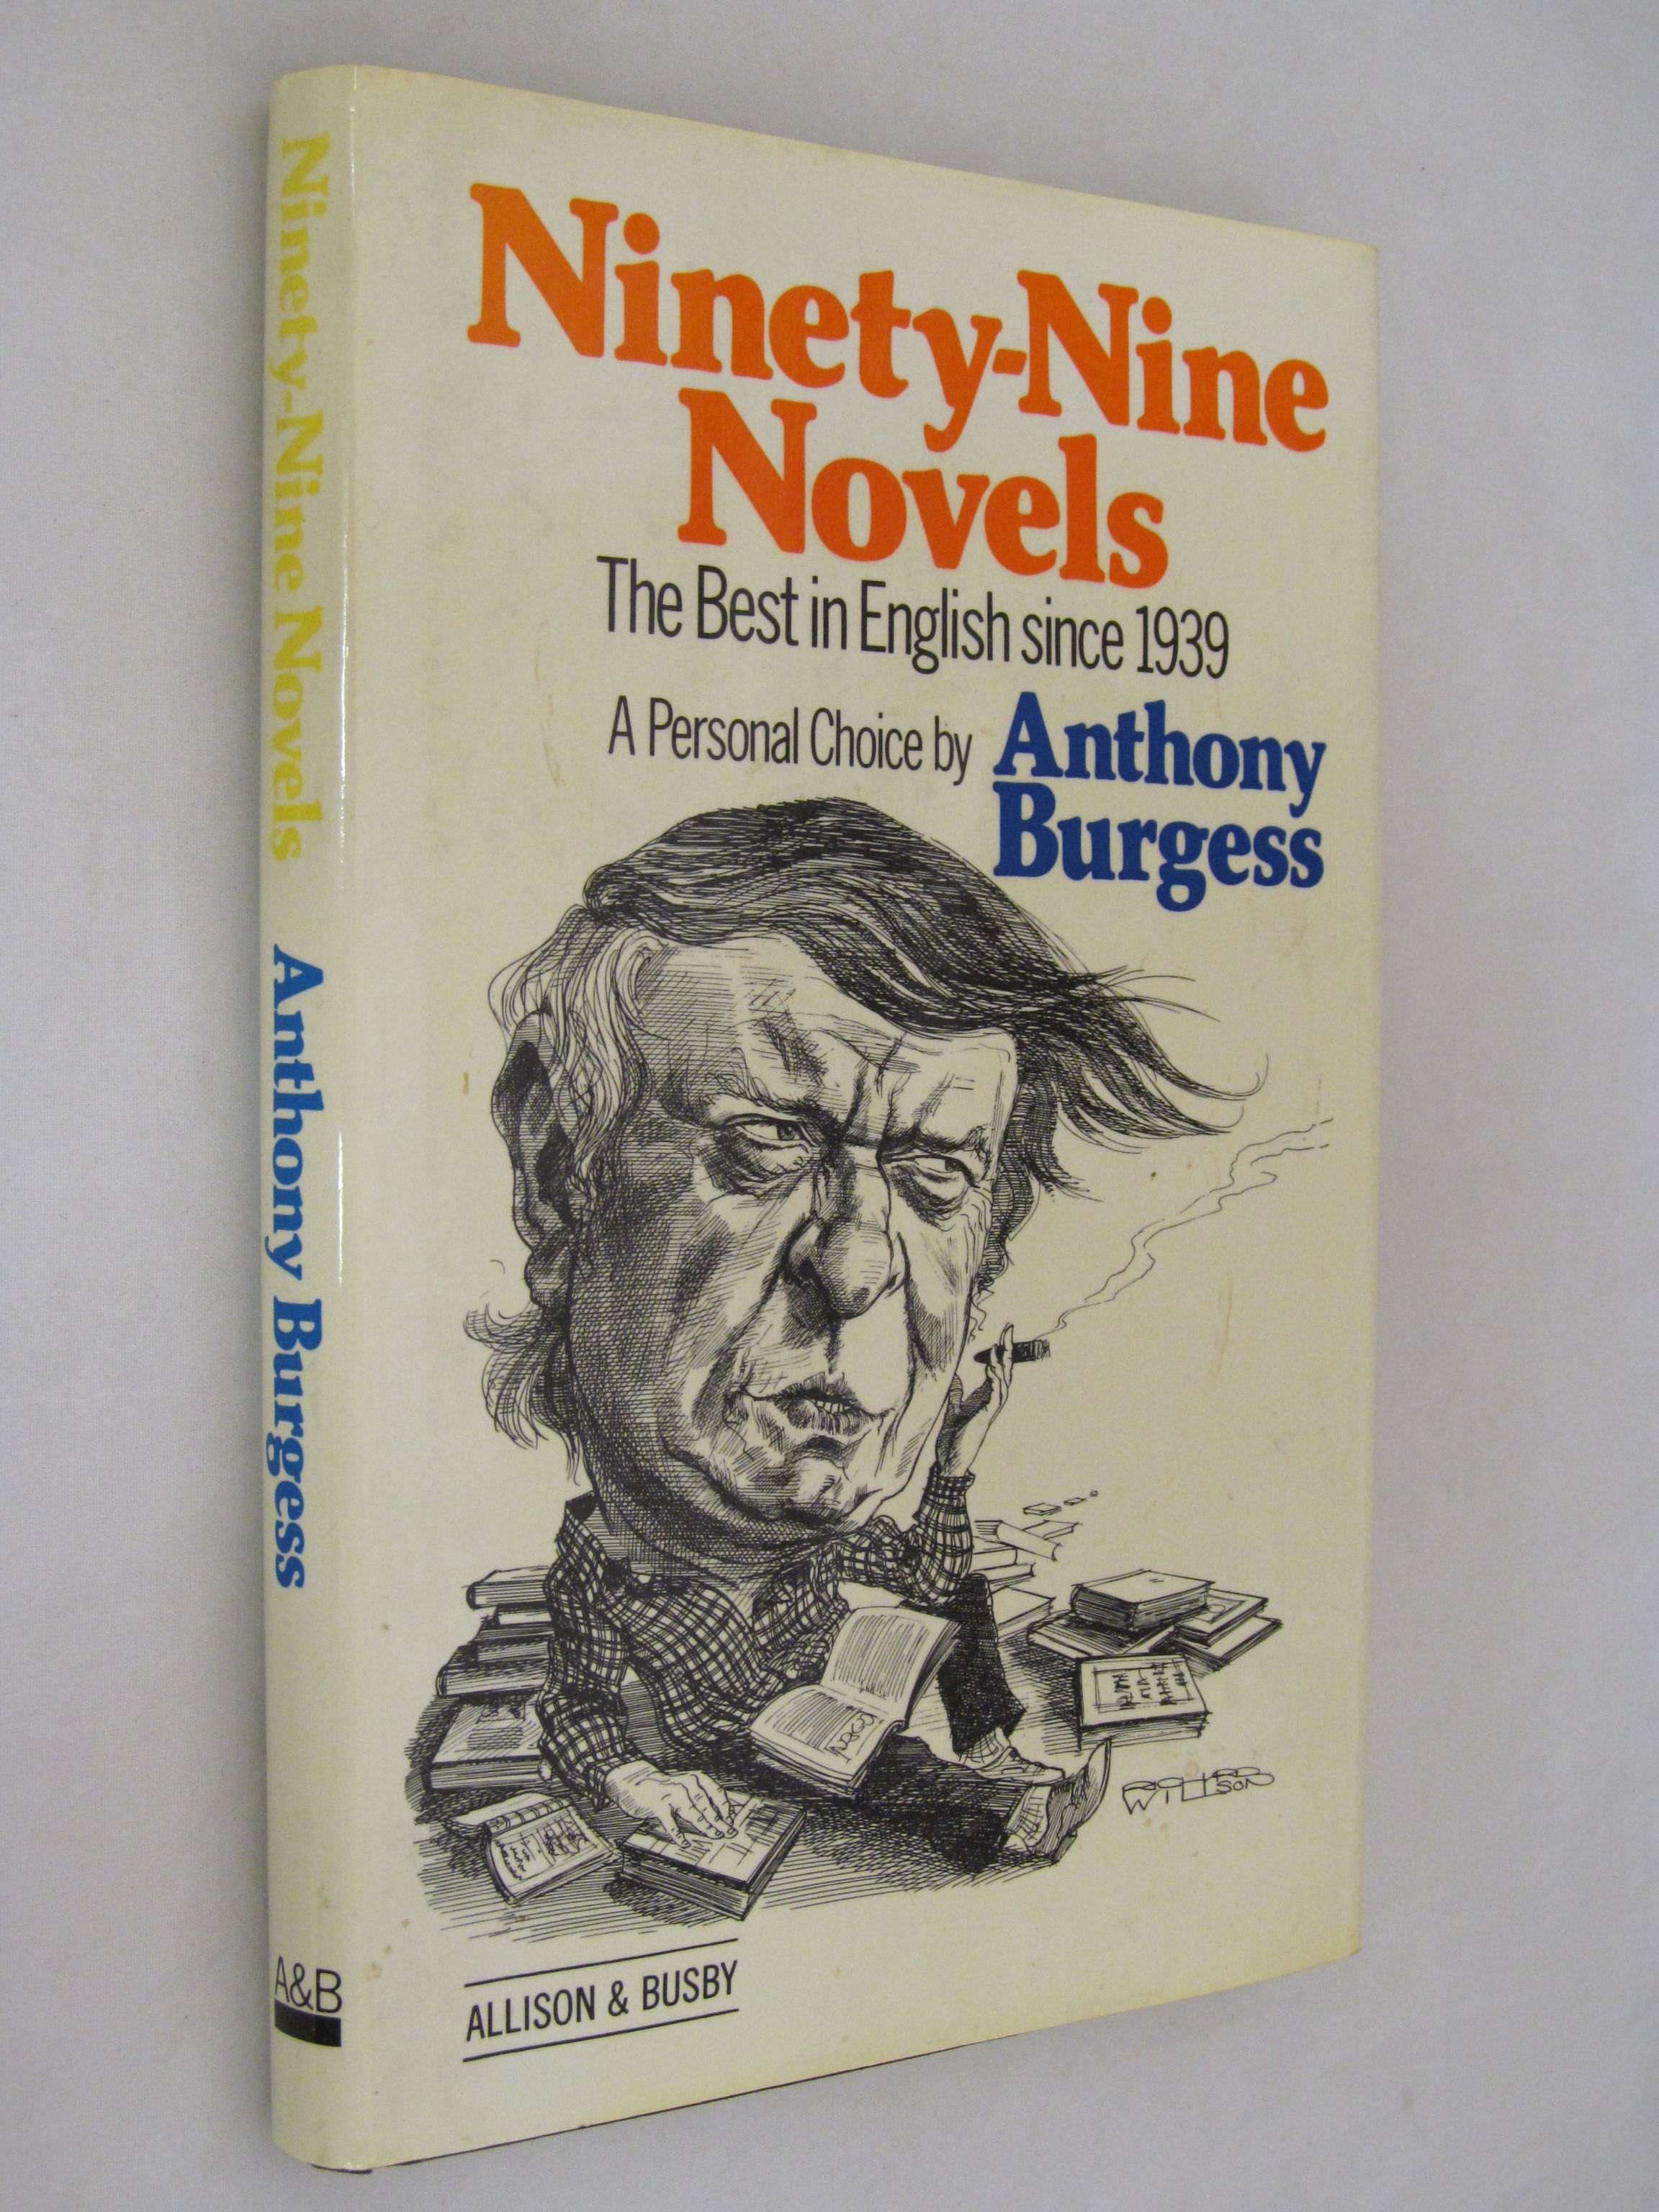 a biography of anthony burgess an english novelist His short novel the eve of saint venus, illustrated by the australian artist edward pagram, considers the manners and morals of the english upper classes nothing like the sun: a story of shakespeare's love life is the first of burgess's encounters with england's national poet and playwright.